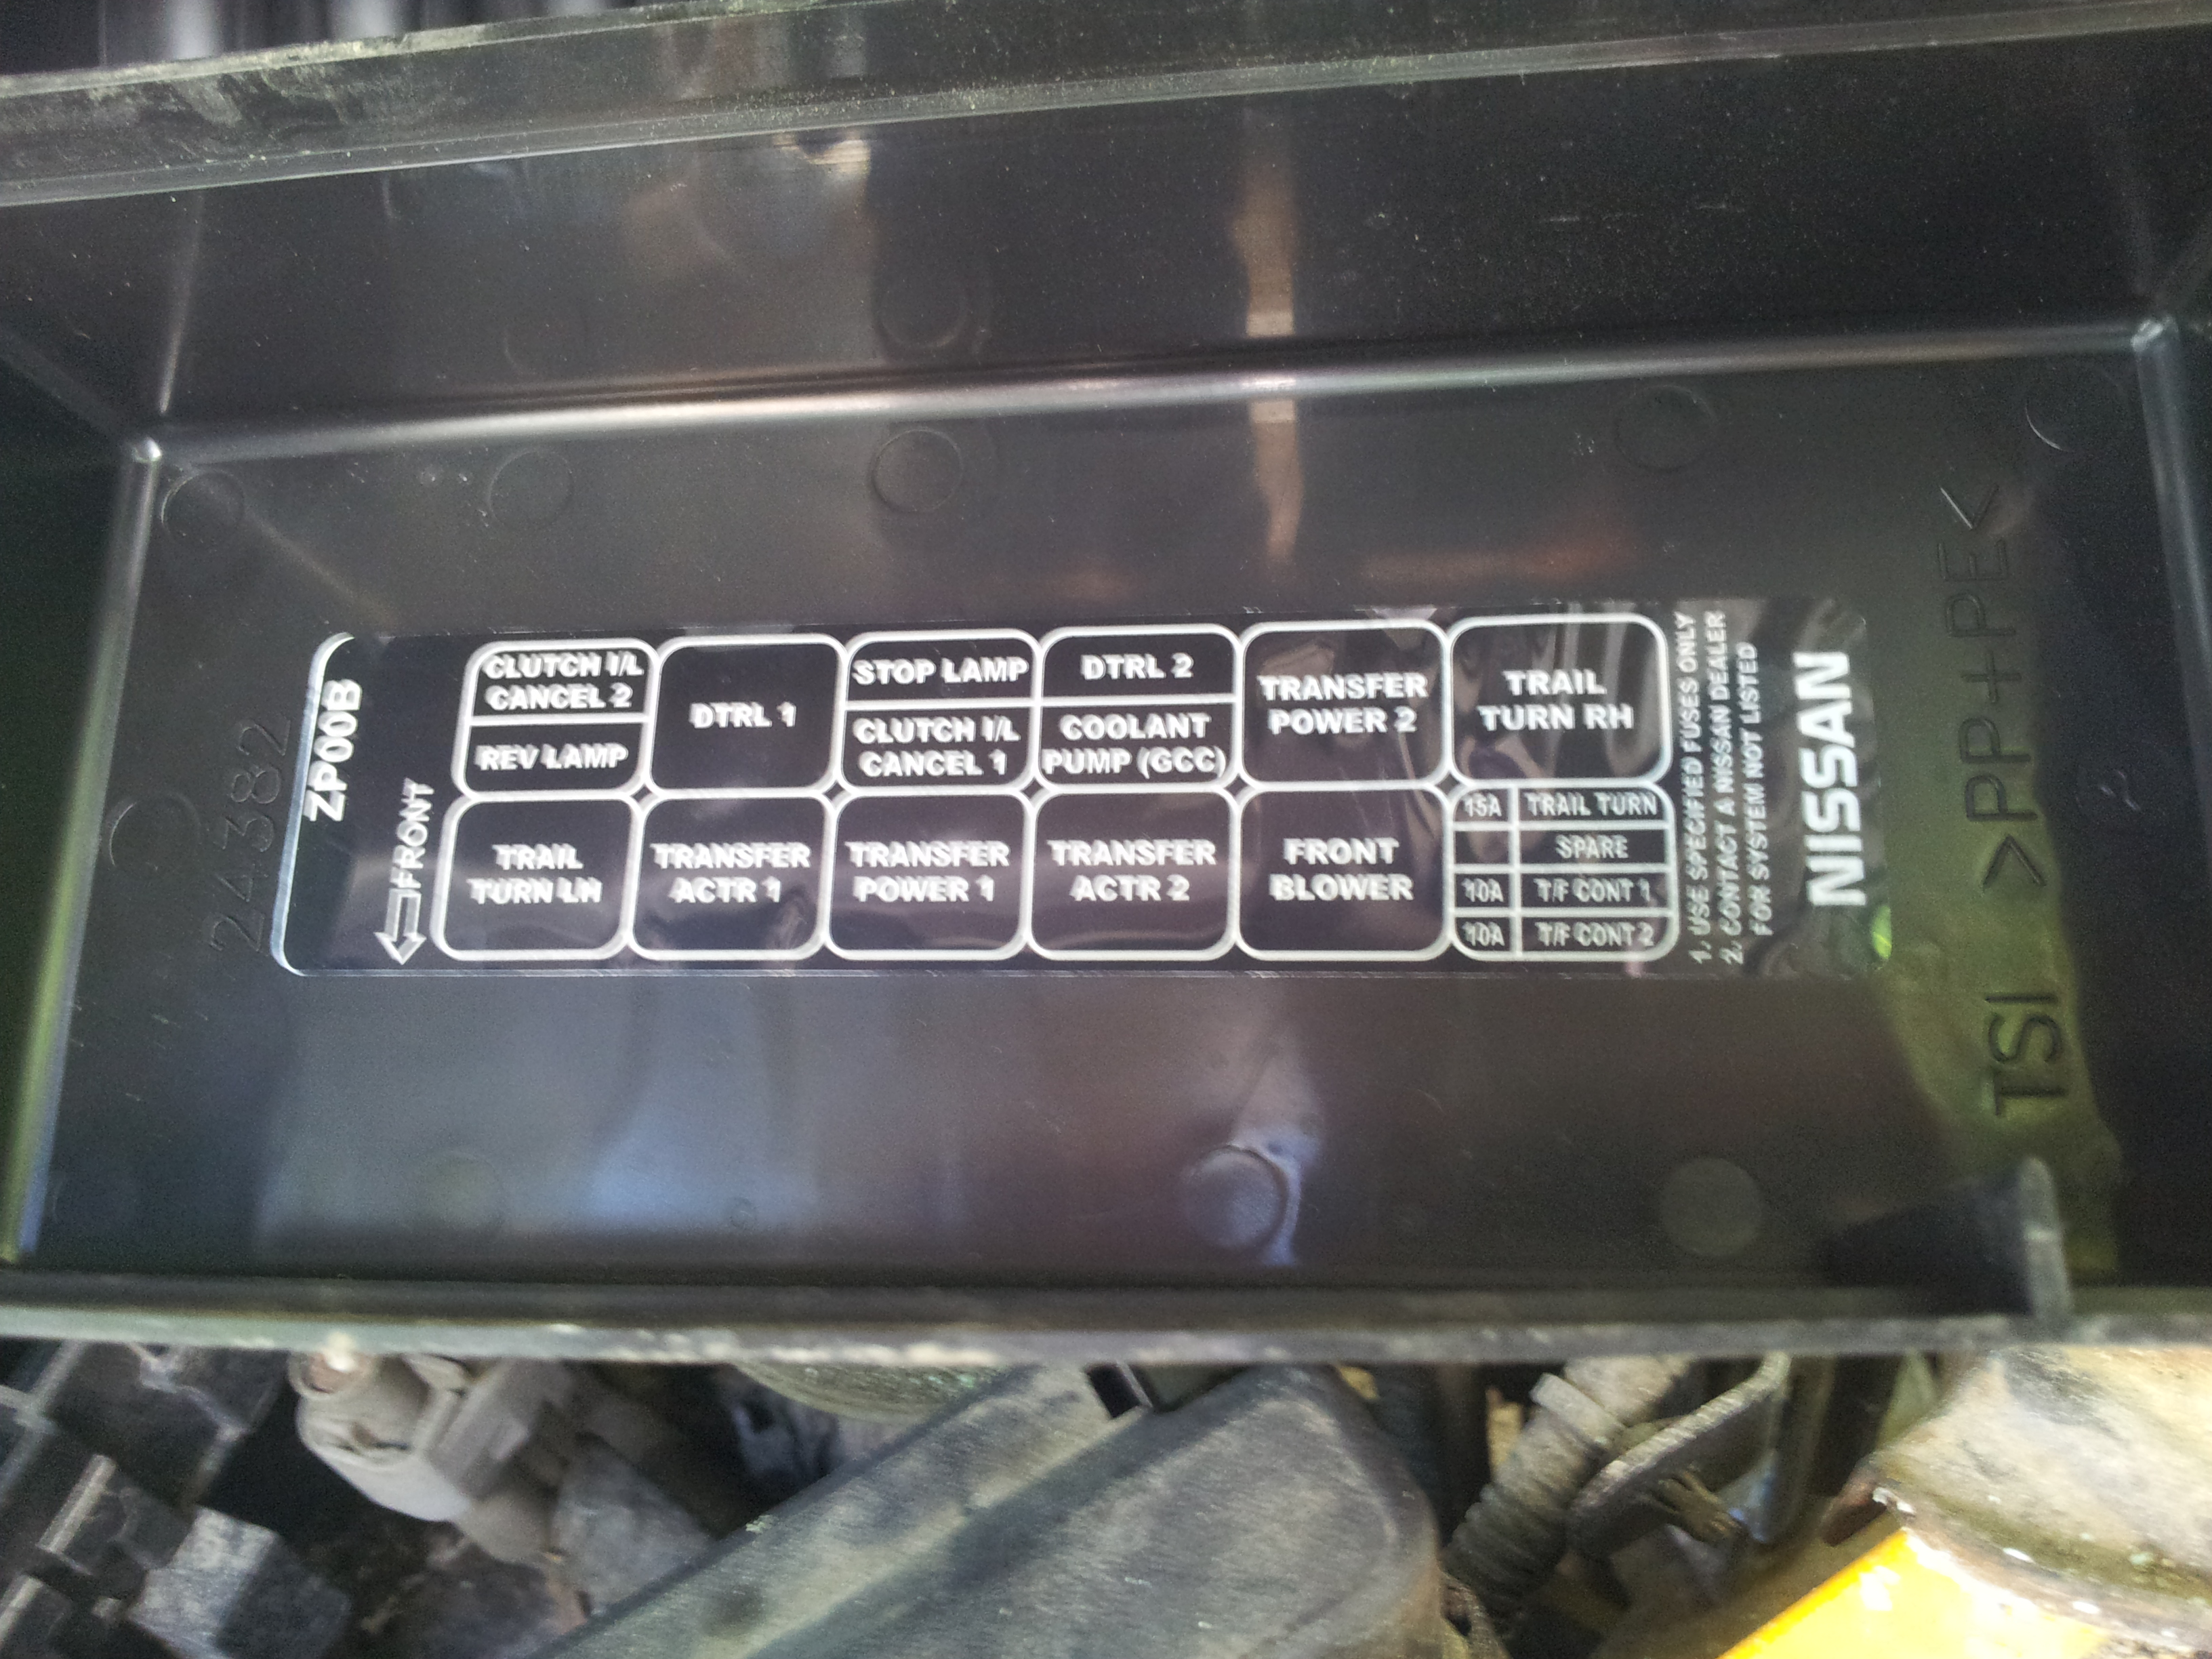 Nissan Frontier Fuse Box Layout Wiring Library 2001 Maxima Diagram 2000 Headlight 01 Xterra Mpg